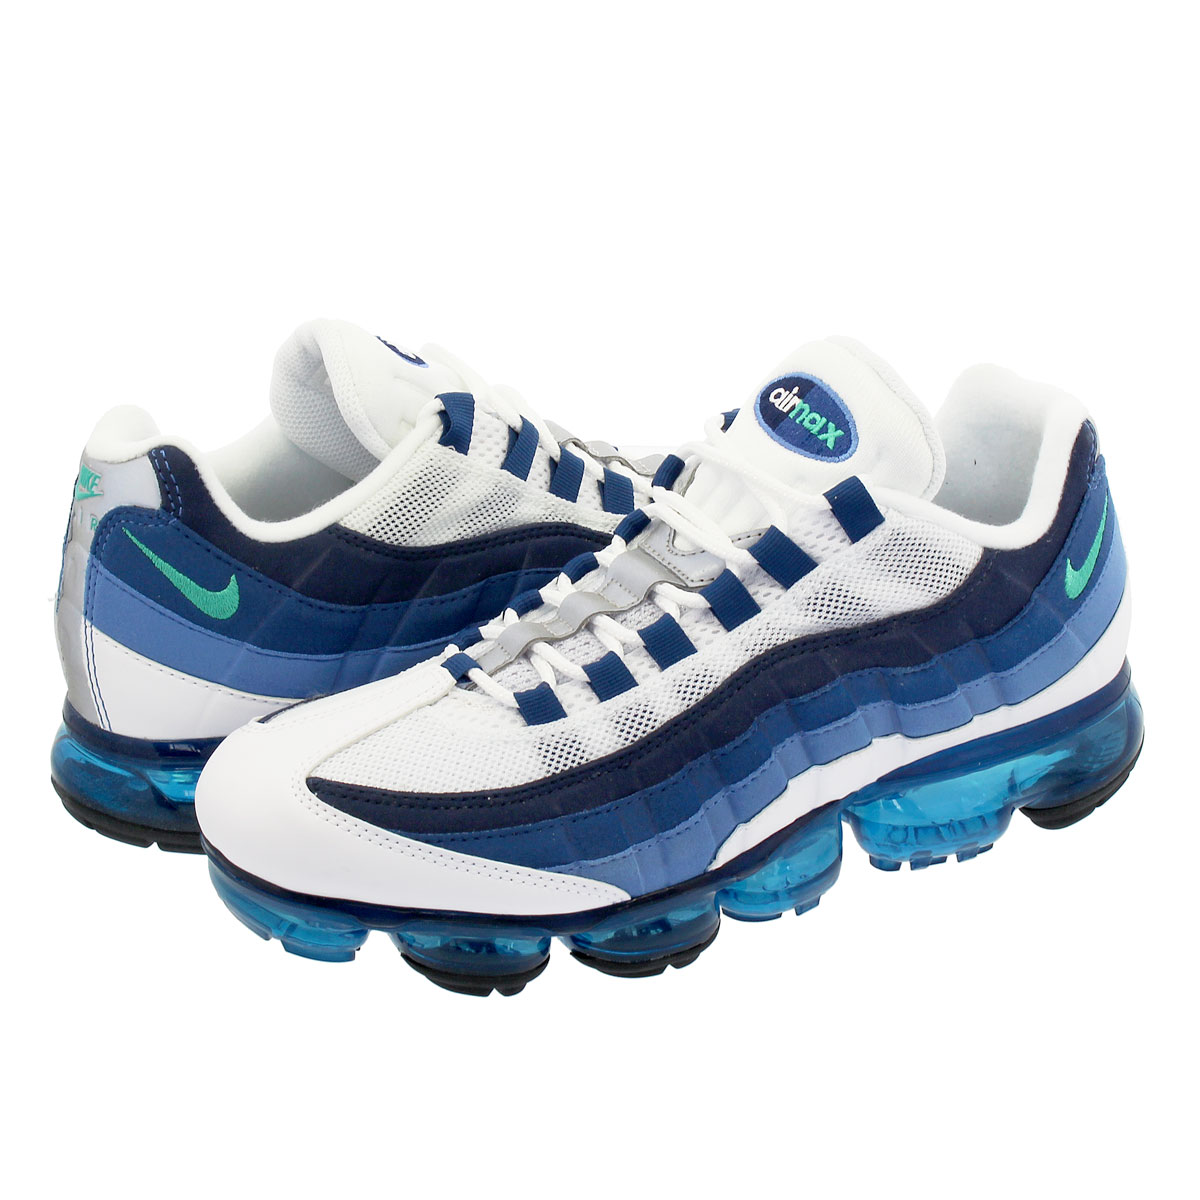 NIKE AIR VAPORMAX 95 ナイキ エア ヴェイパーマックス 95 WHITE/NEW GREEN/FRENCH BLUE/LAKE BLUE aj7292-100